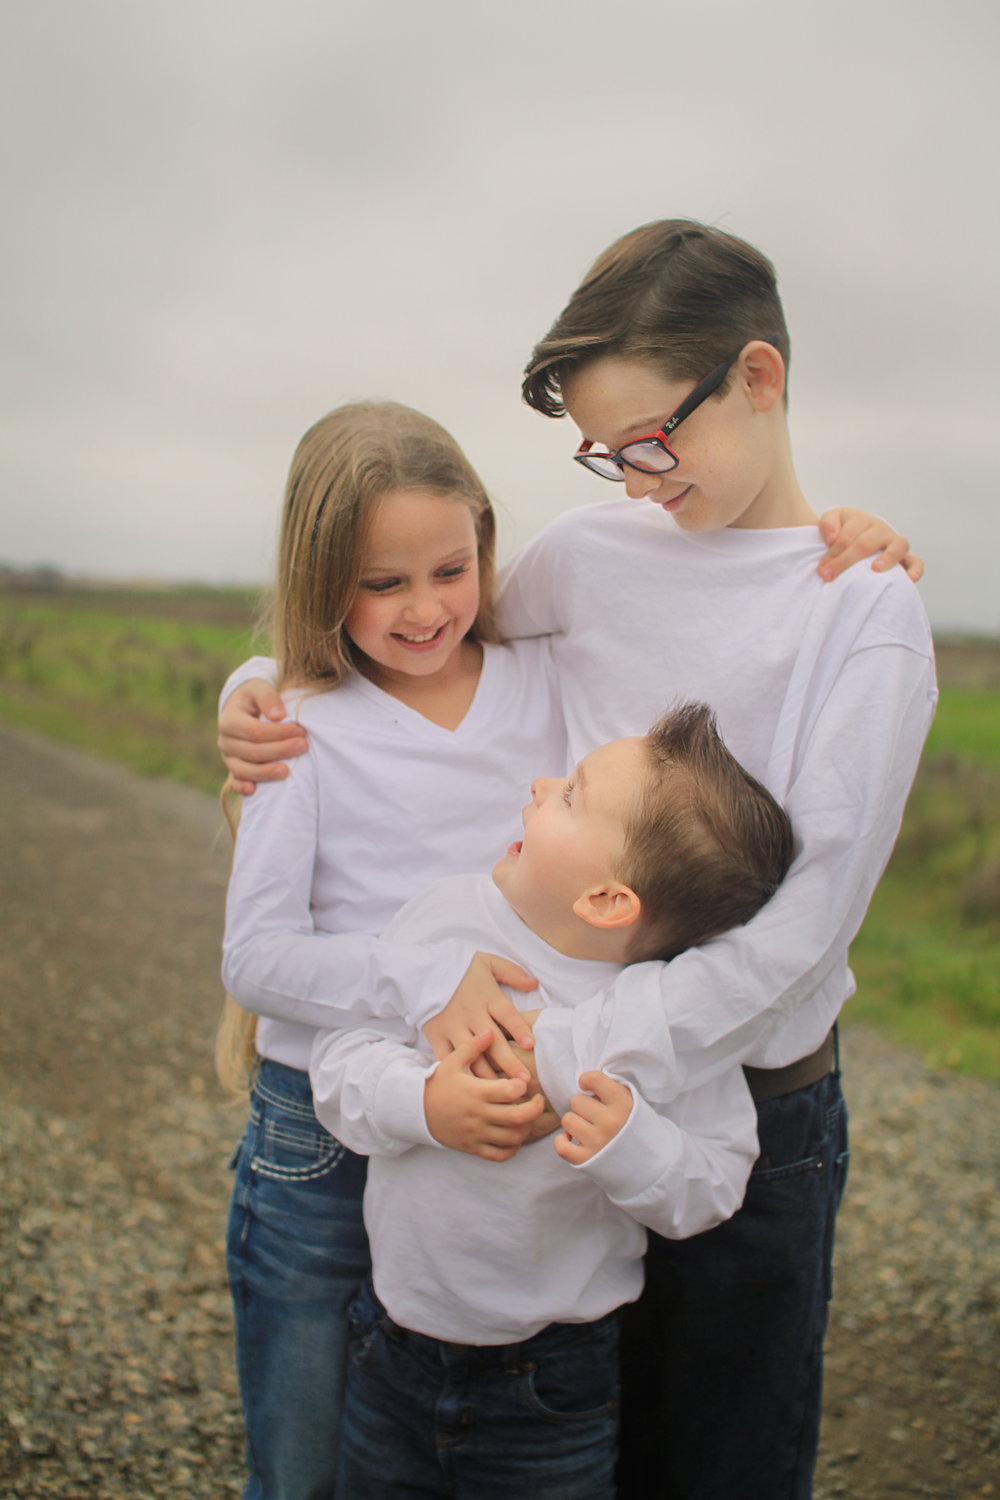 - I was very fortunate to have Stephanie Renae Photography take the most beautiful images of my children. I have the children ages 12, 10, and 4 and I was so impressed with how she interacted with them! My kids are already asking when they get to have their picture taken again by their new friend! Thanks for wonderful memories you captured for us!-Meagan